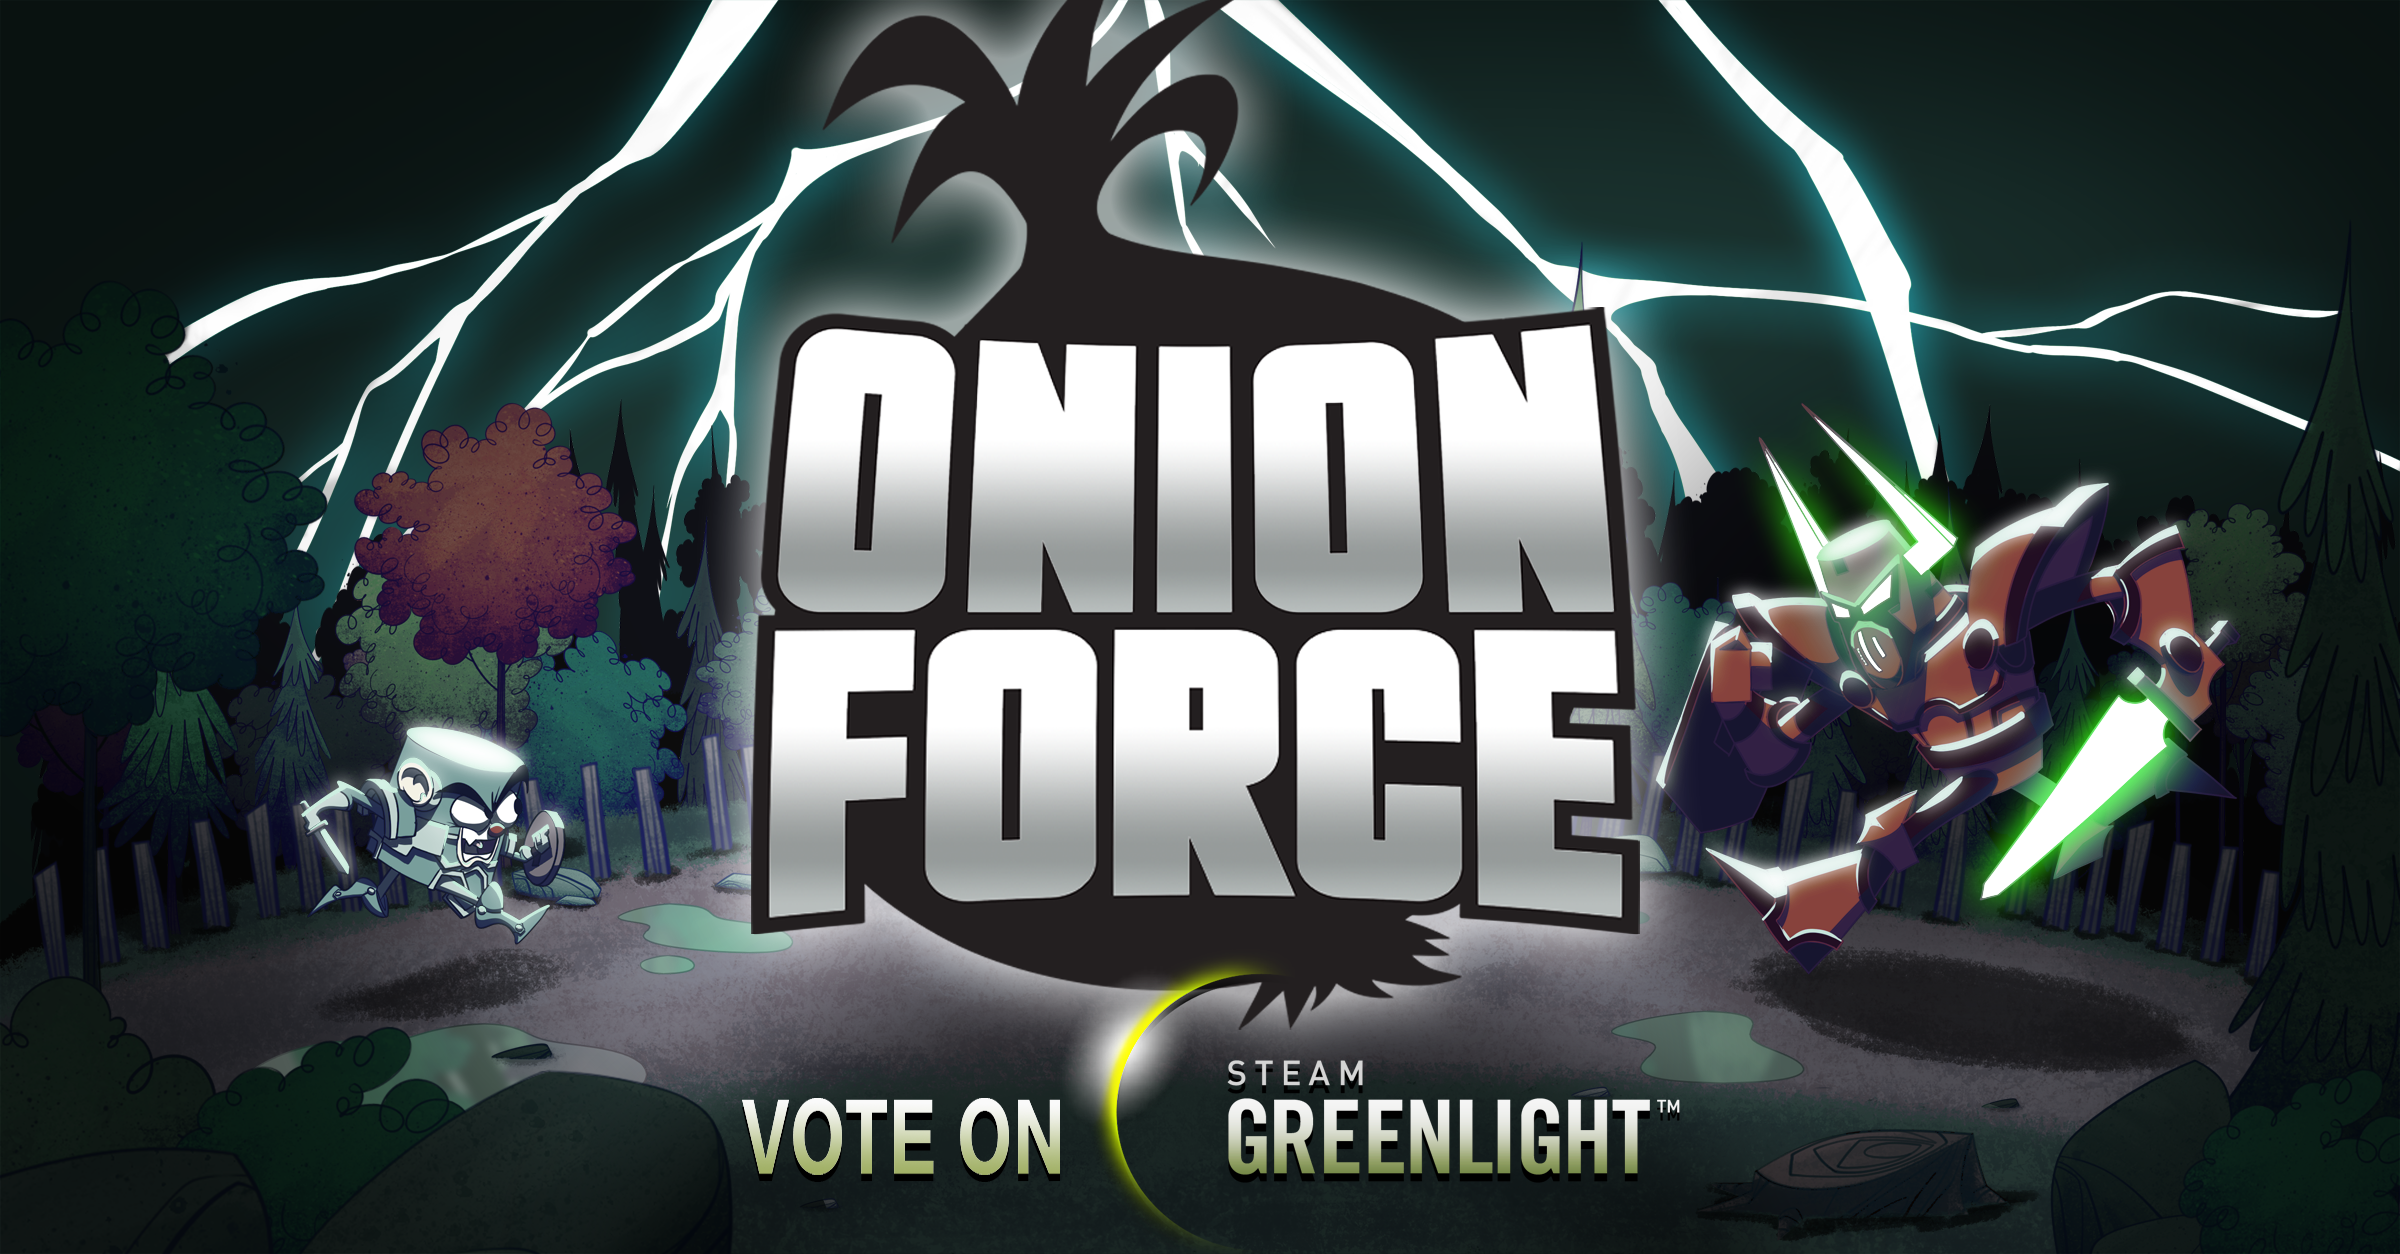 greenlightbanneronionforce 2